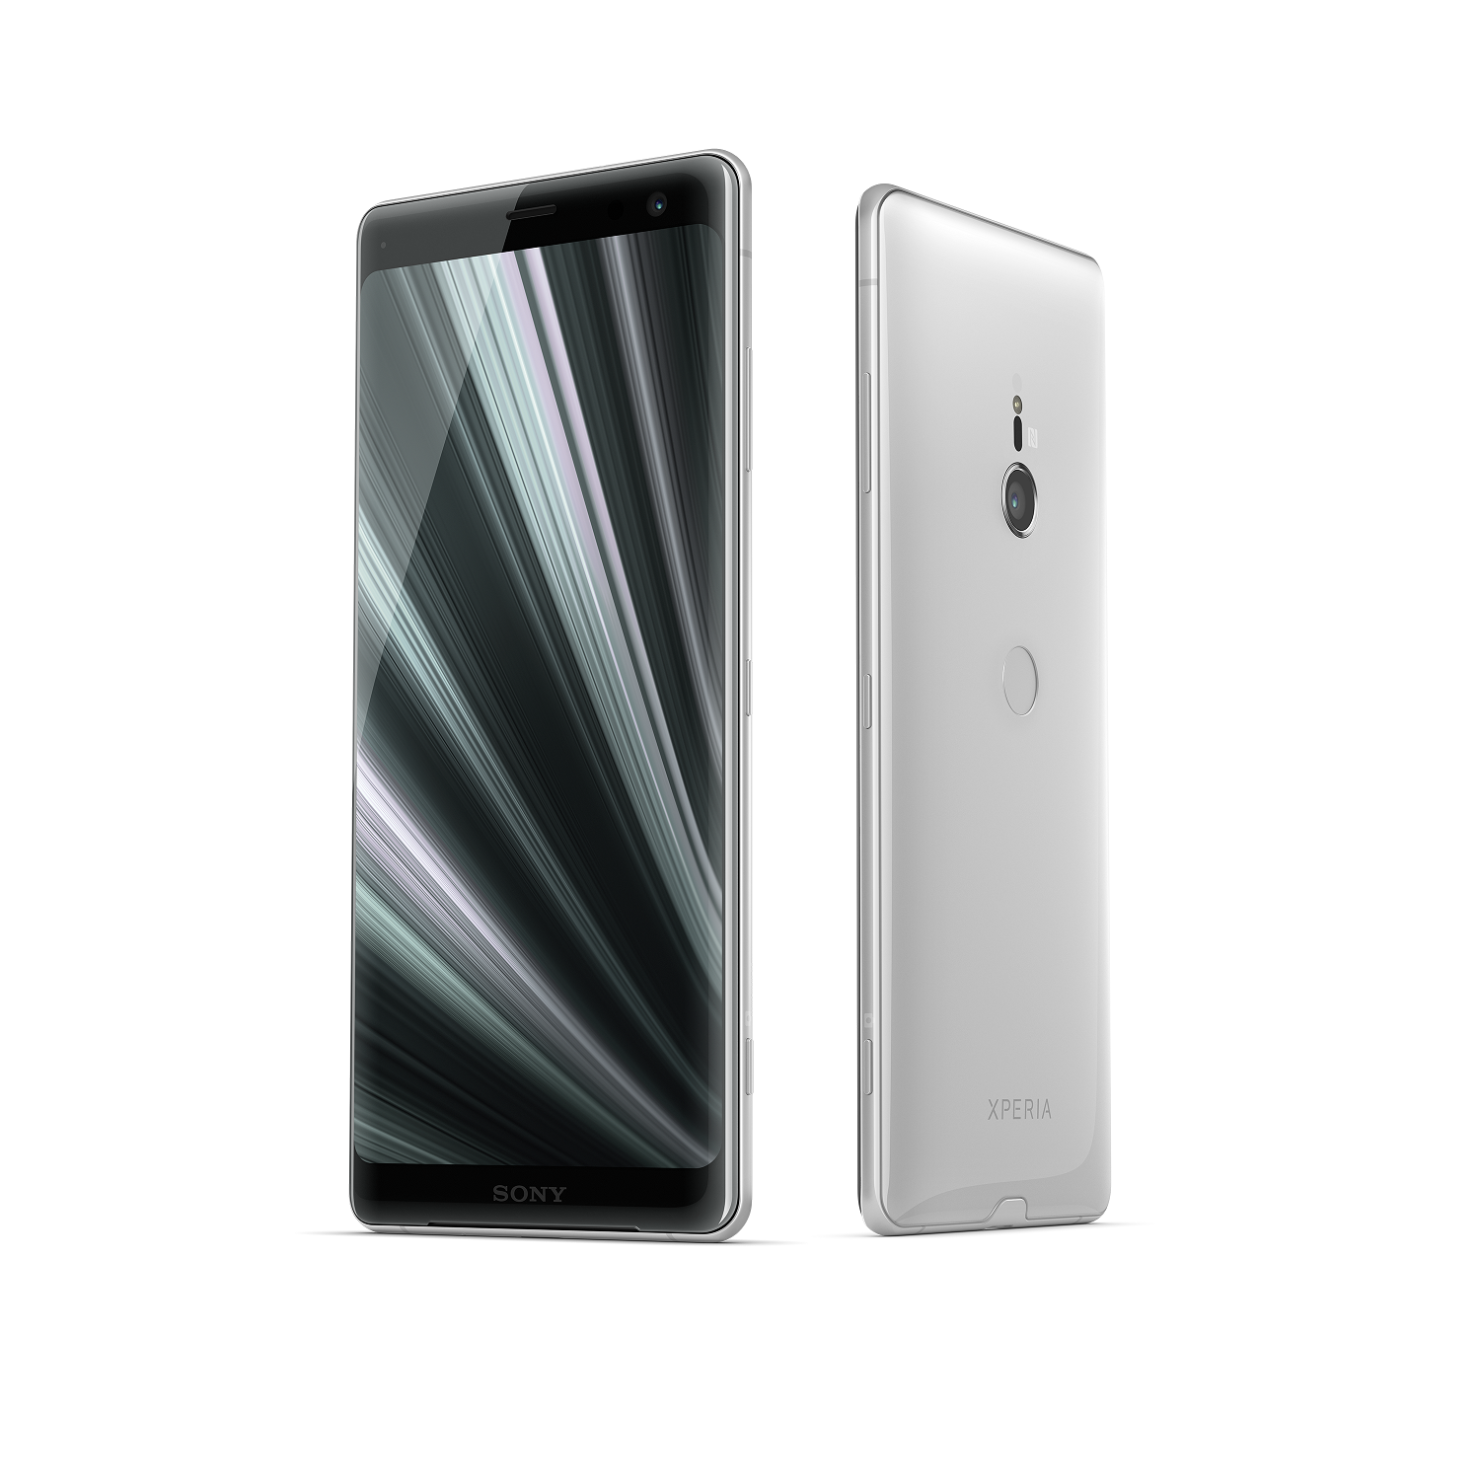 xperia-xz3_group_white_silver_front40_back40